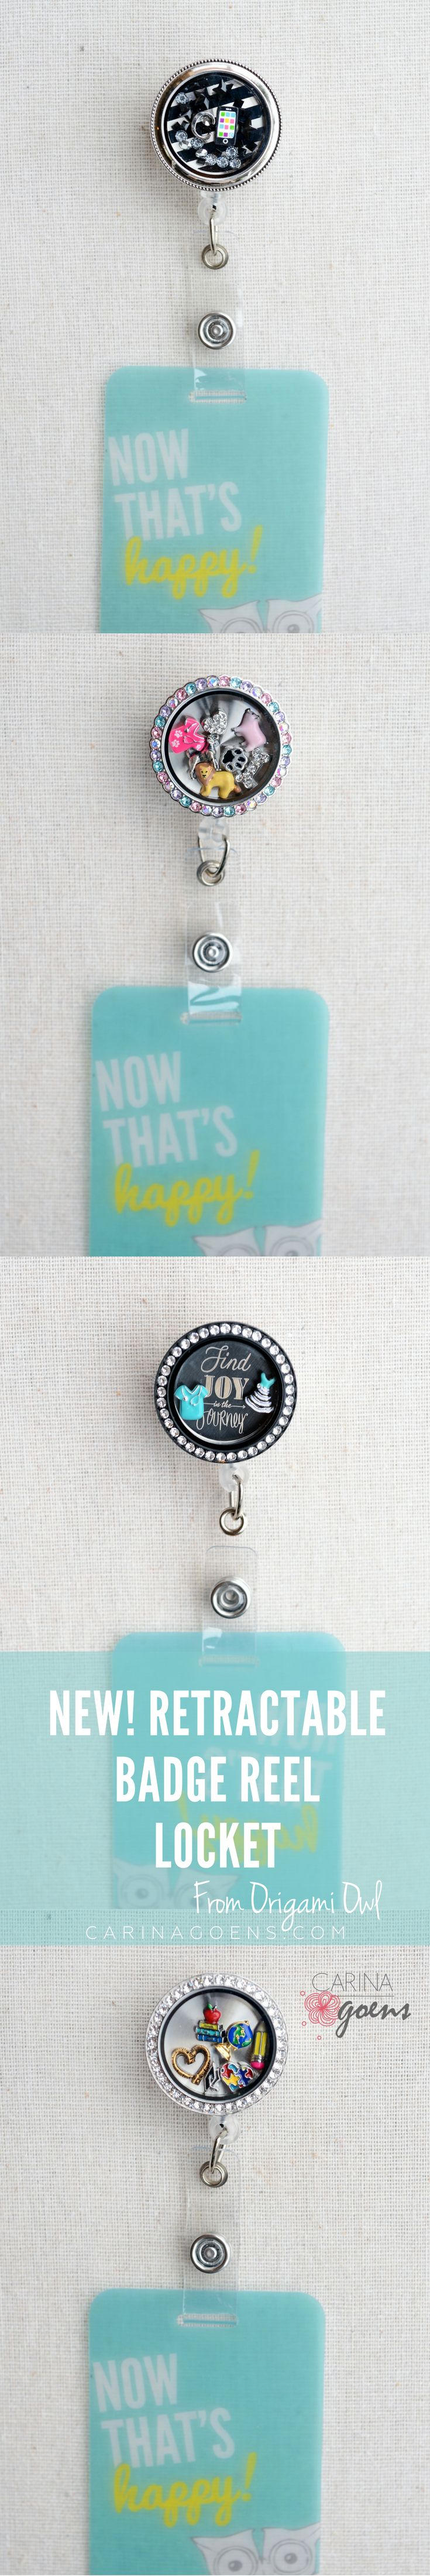 A cornucopia of choices....  Discover the new retractable badge reel locket from Origami Owl. Go to work in style for heaven sake.  @ carinagoens.com